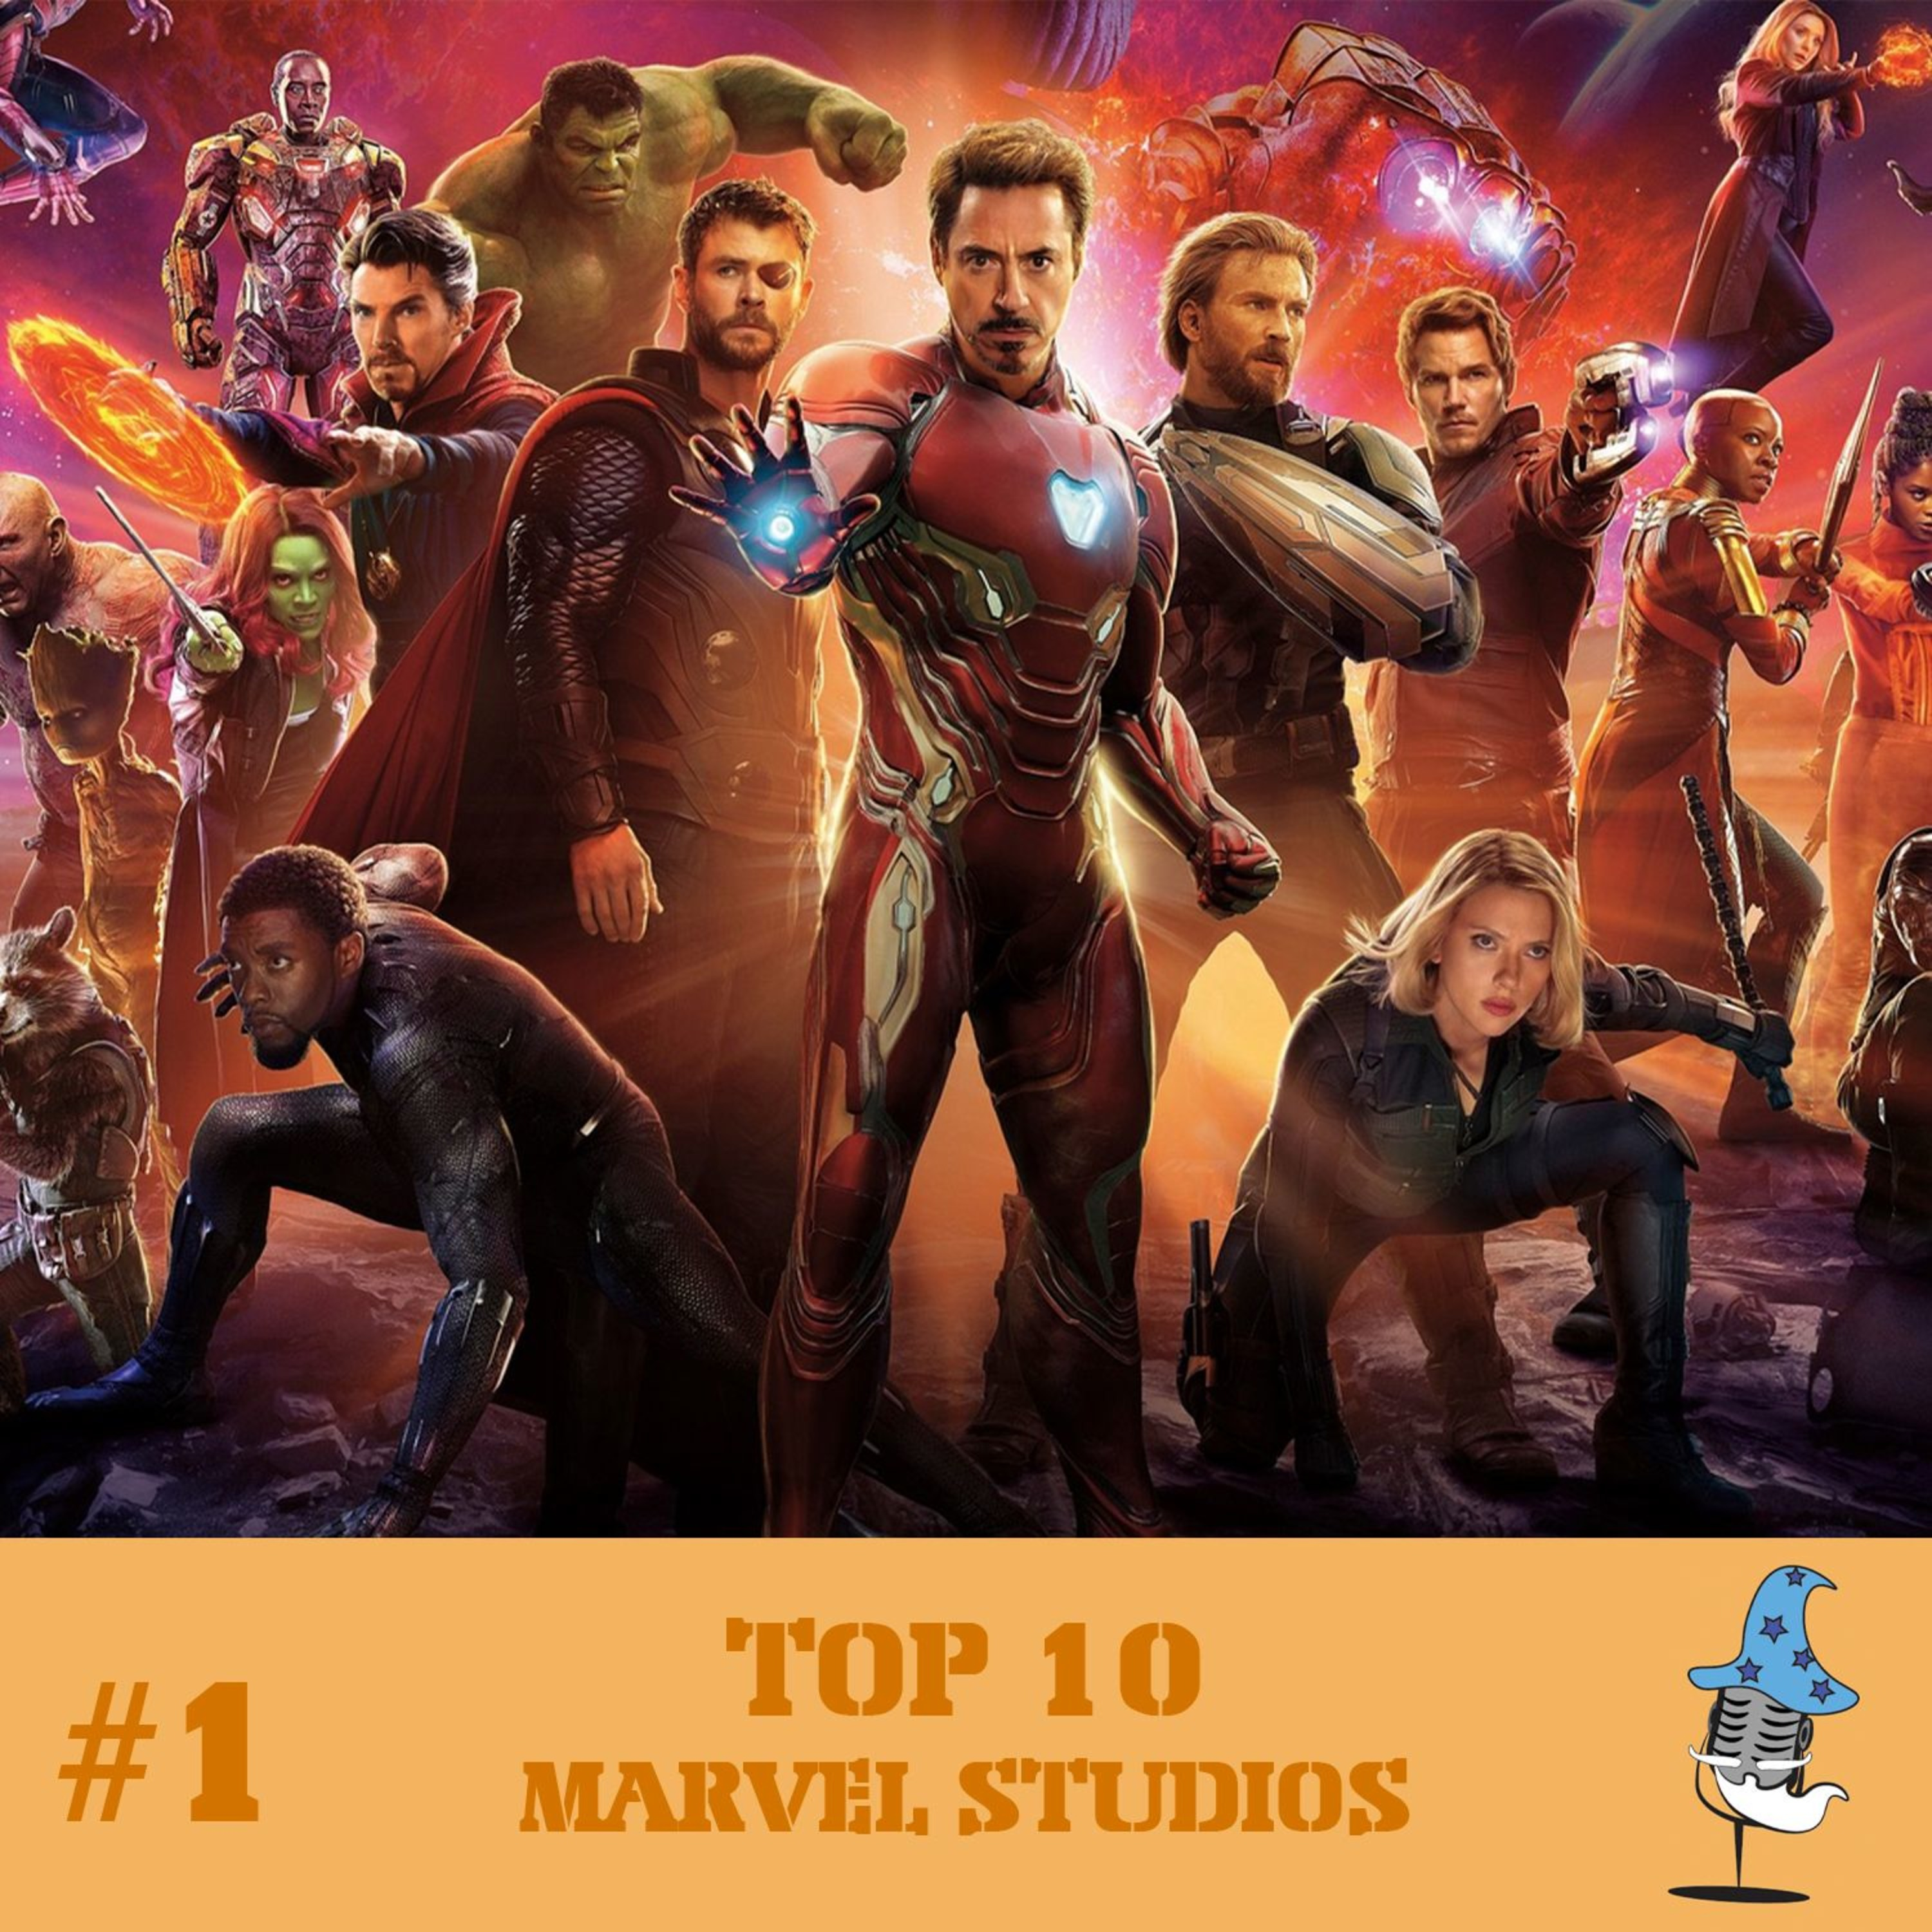 PBDM #1 - Top 10 Marvel Studios